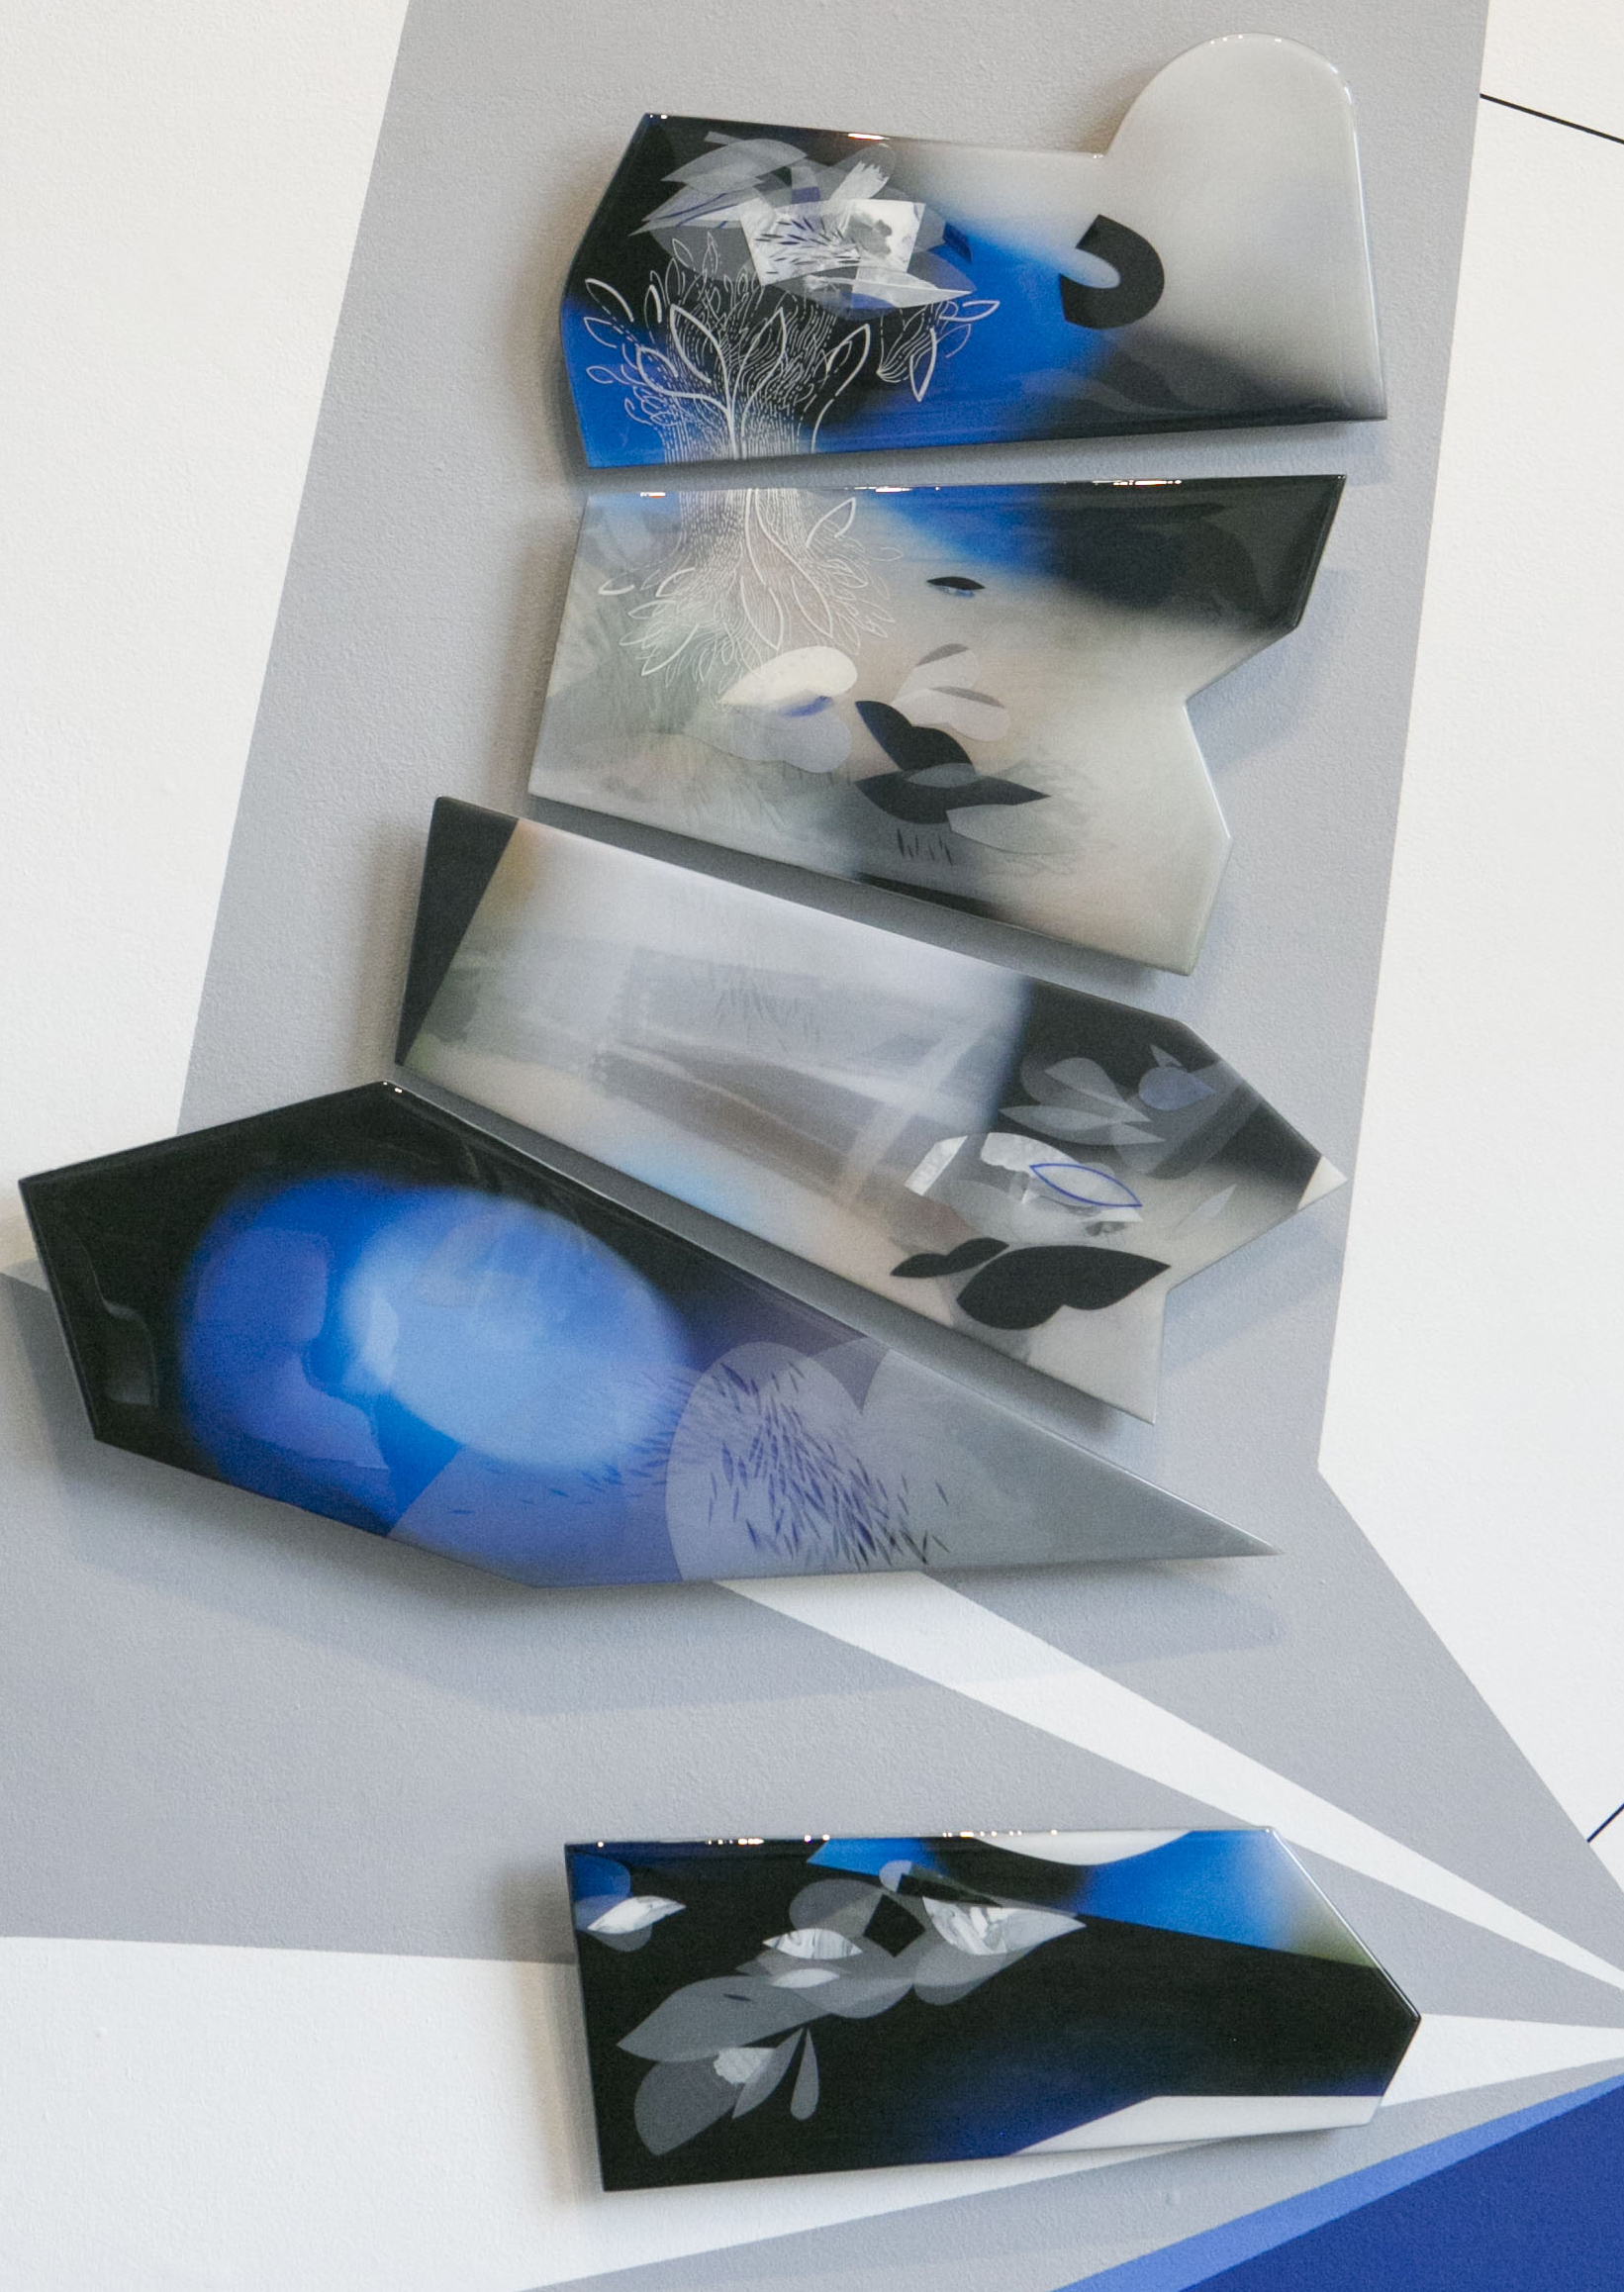 From top to bottom:  1.1   25x14.5 1.2   sold 1.3   19x12 1.4   16x6 1.5   21x8.5  mixed media photography in resin